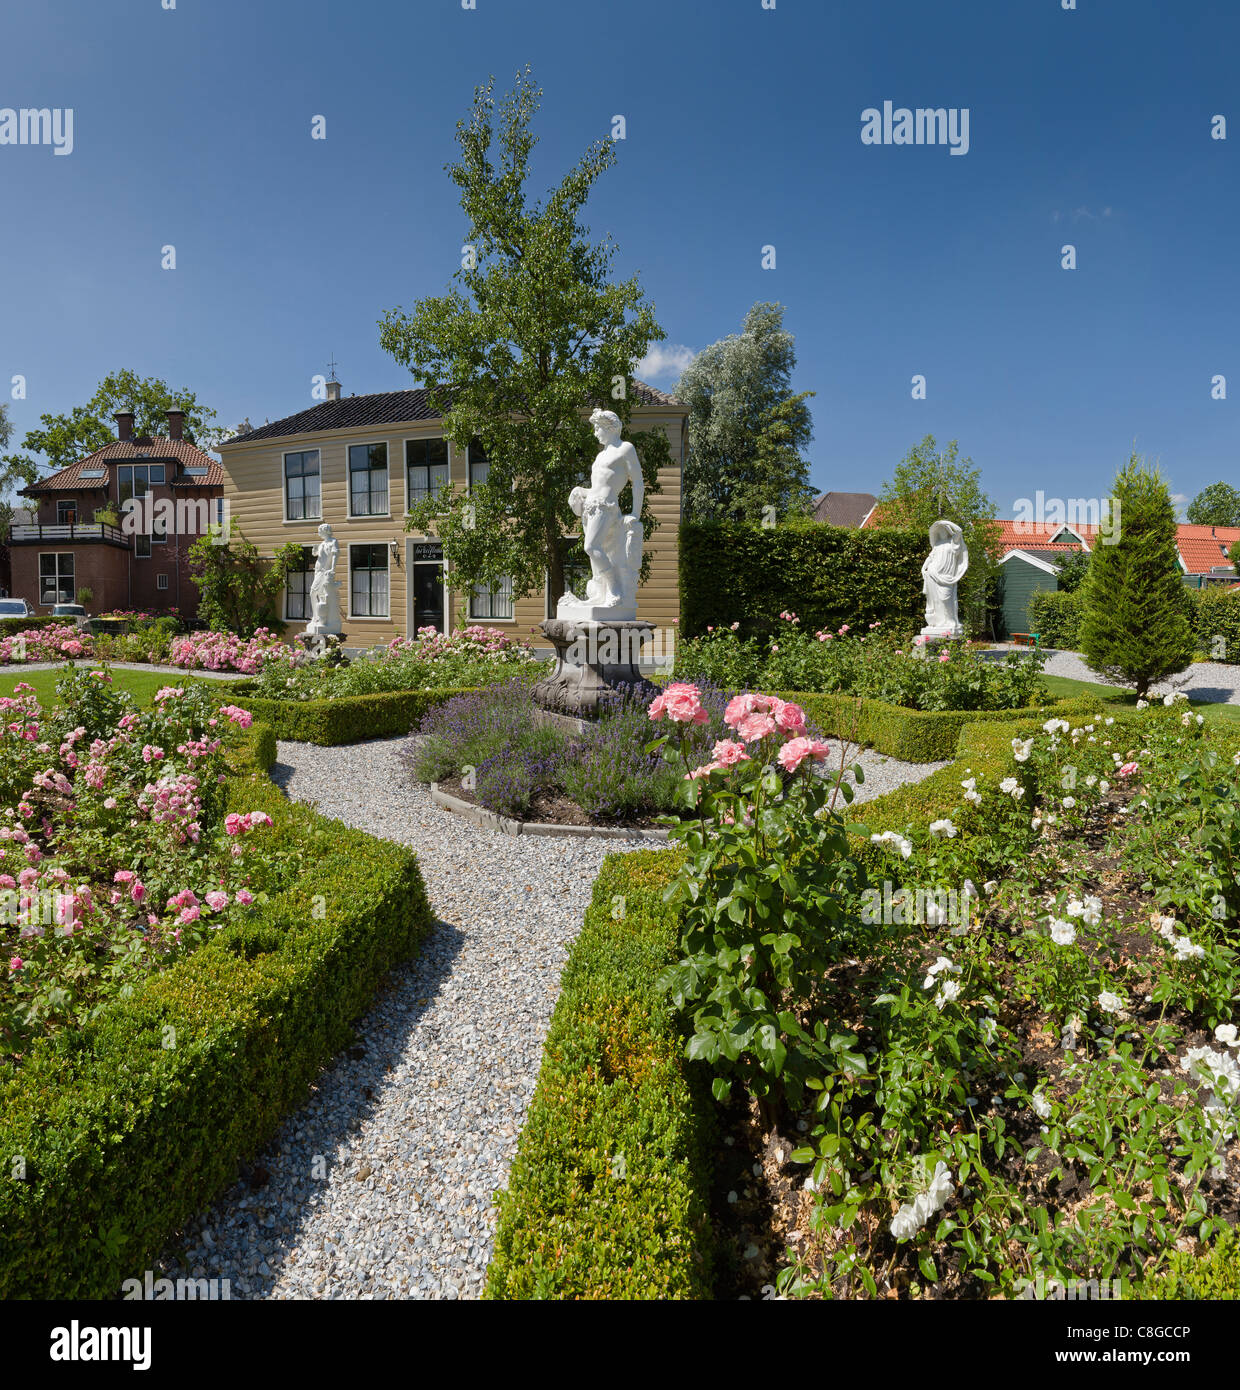 Netherlands, Europe, Holland, Zaandijk, Summer House, Statues, Garden, City,  Village, Flowers, Summer, Garden